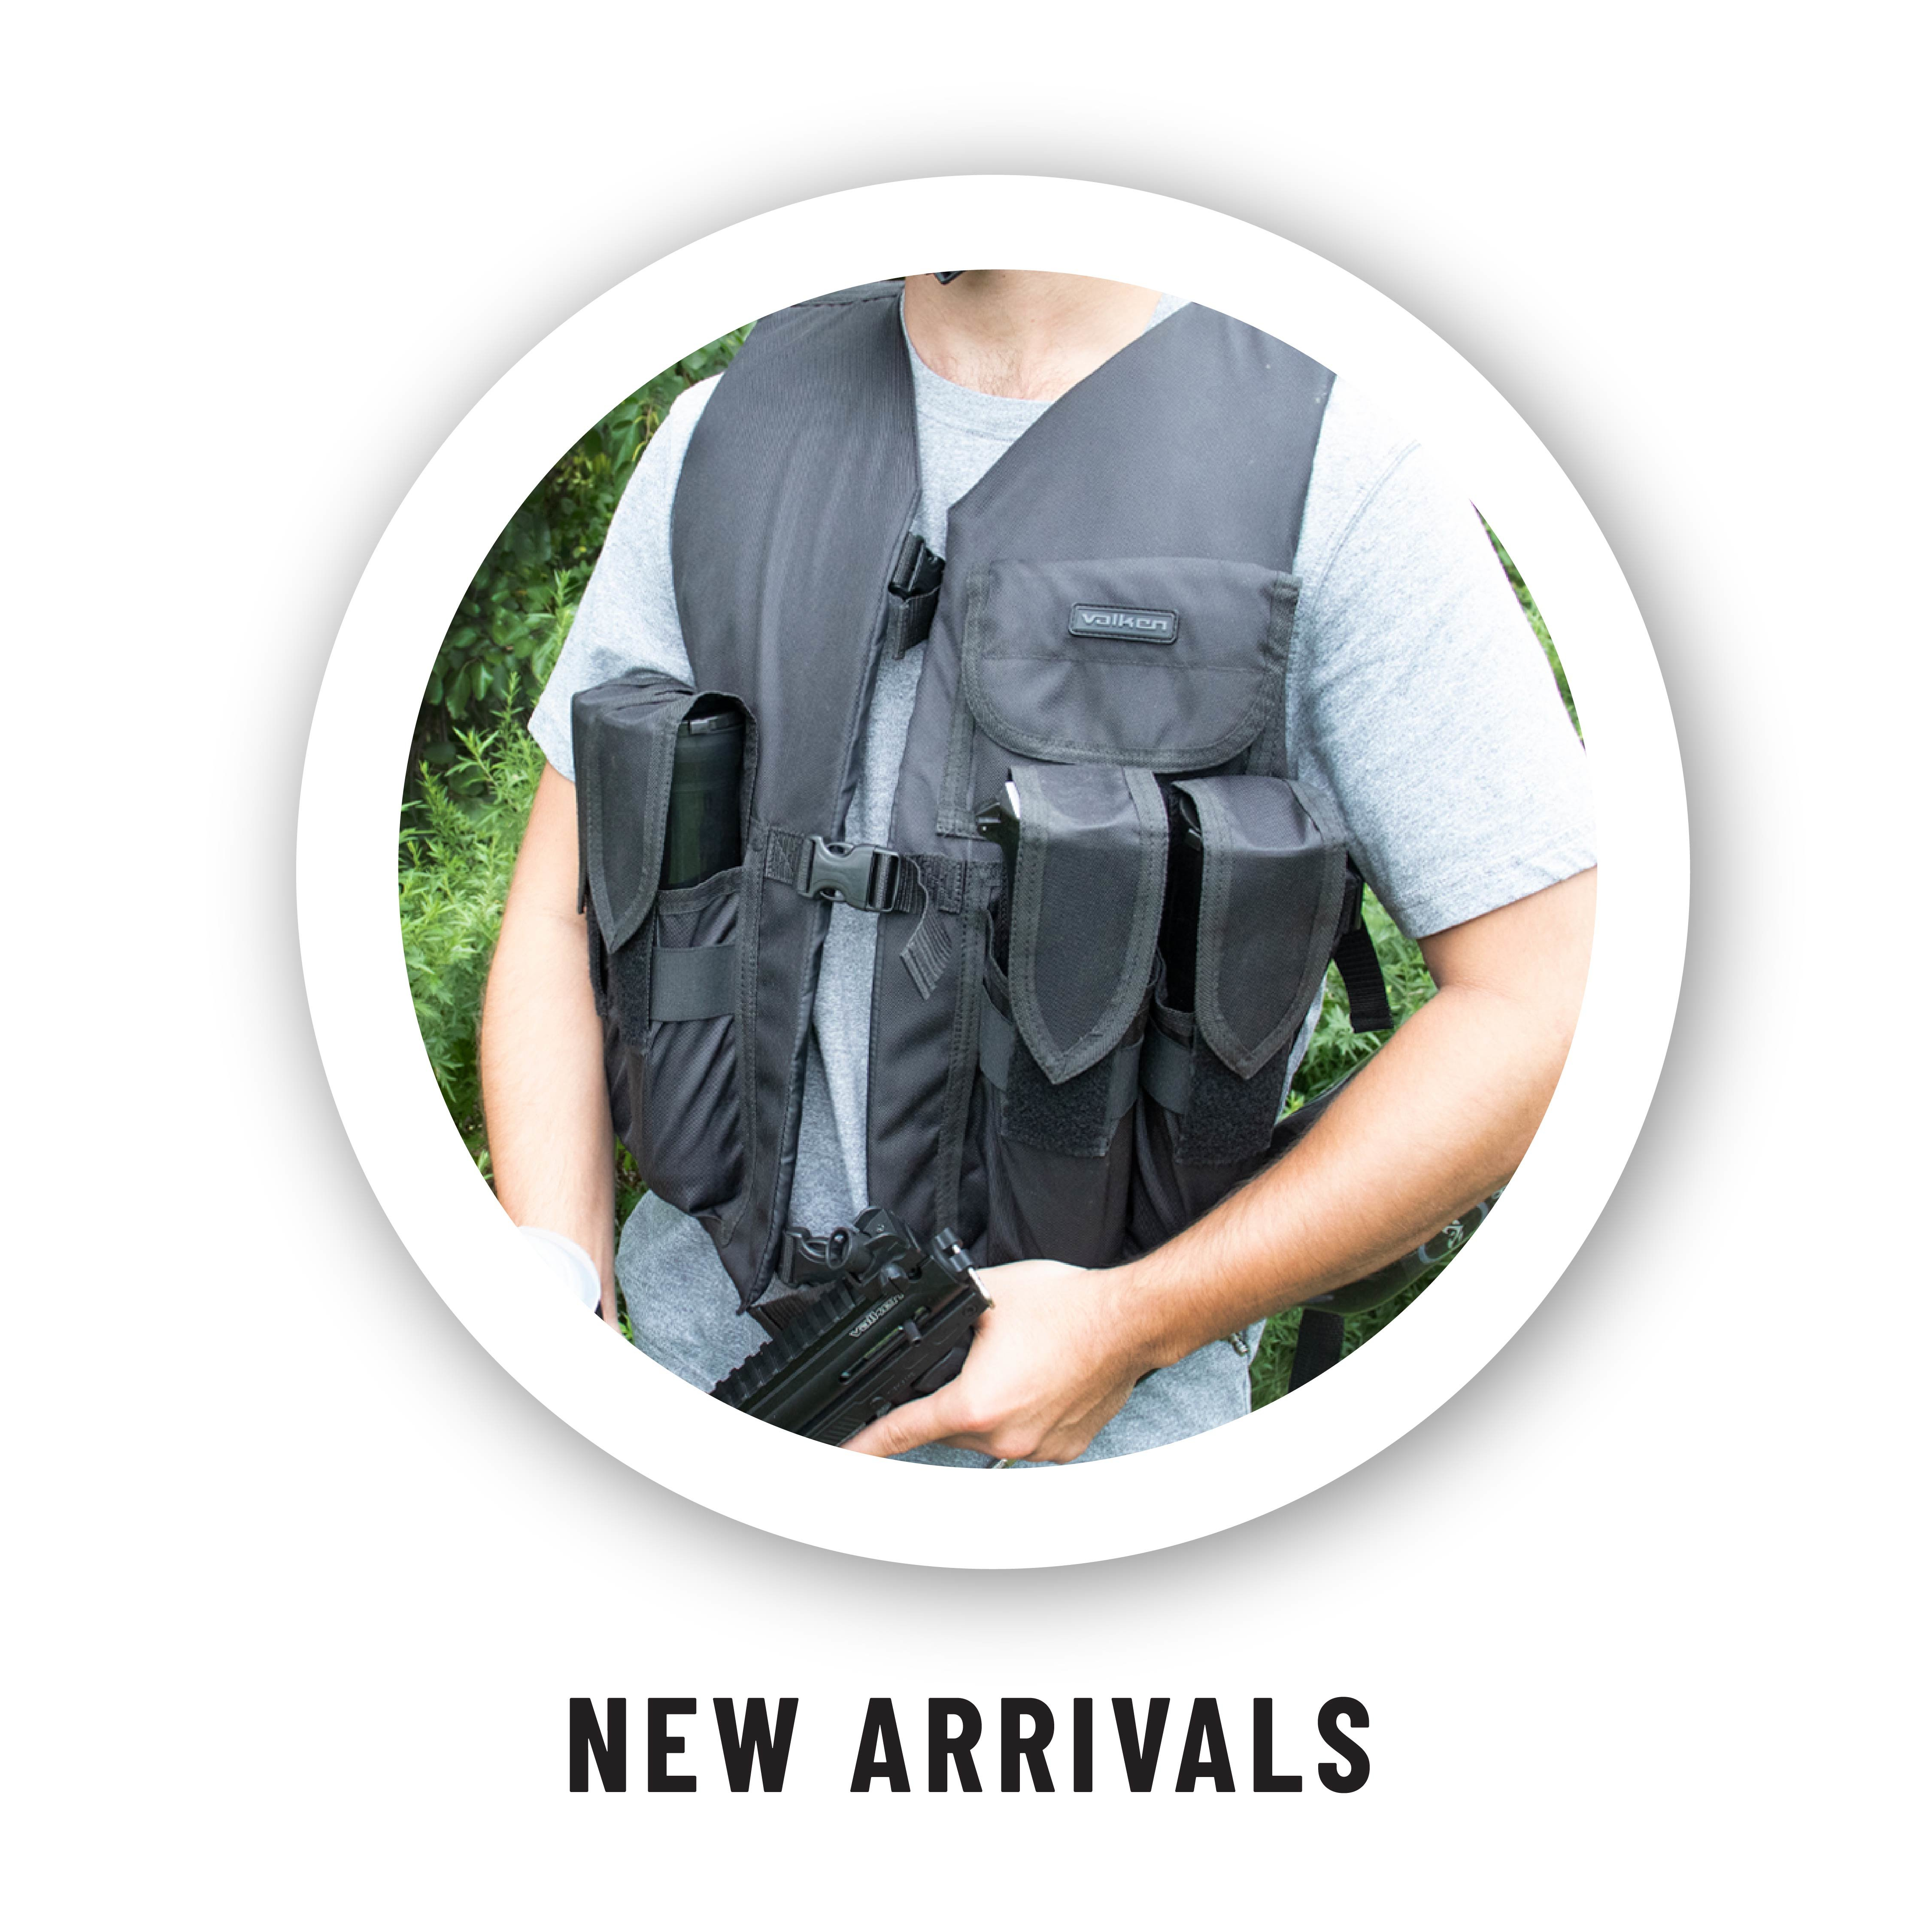 Paintball New Arrivals